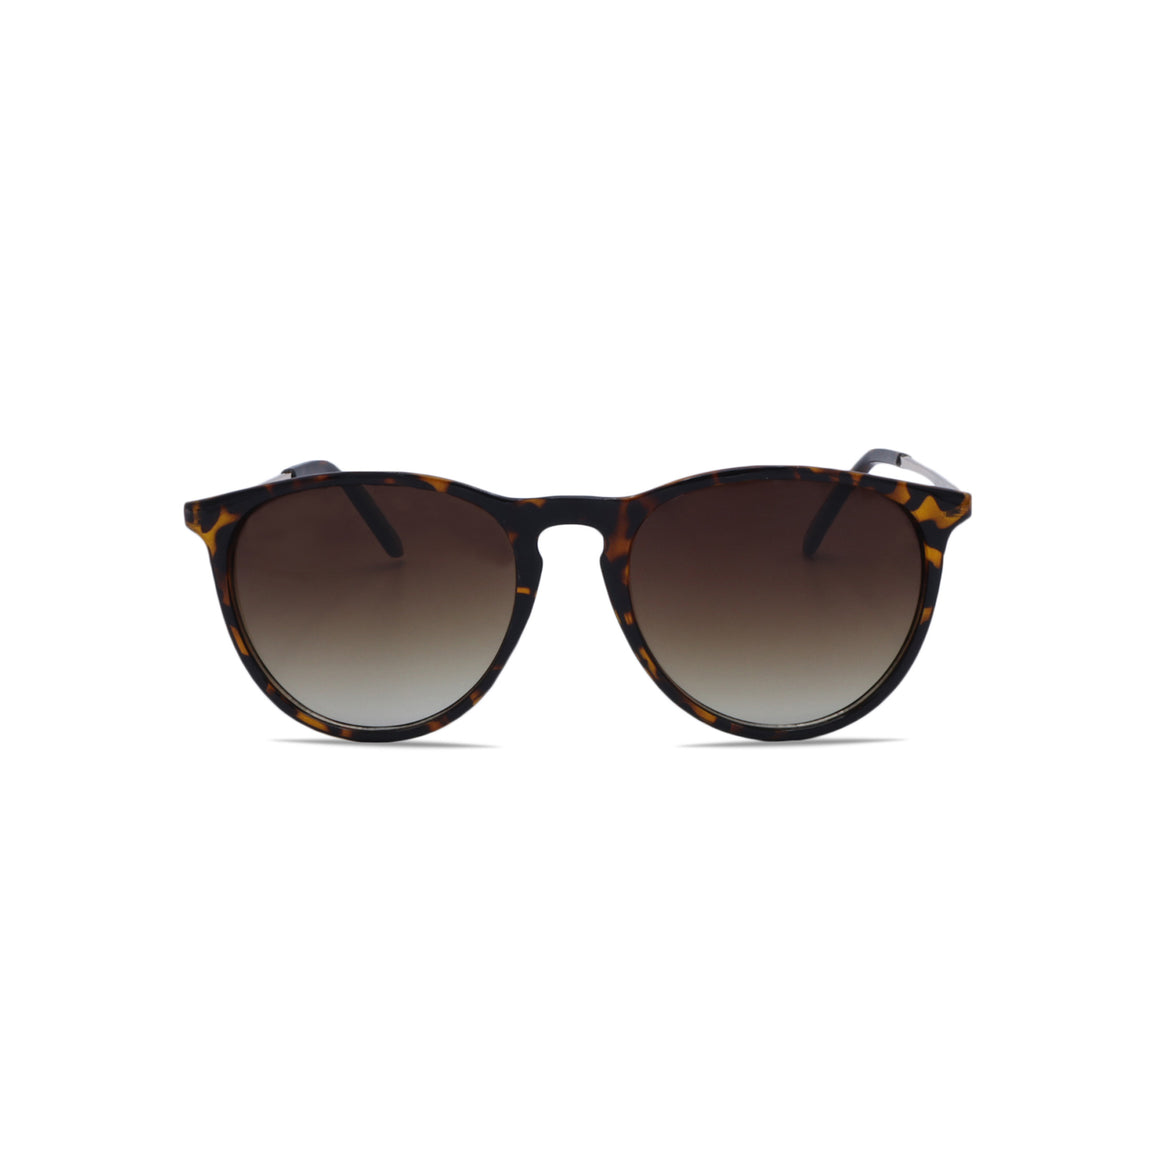 Retro Sunglasses Vintage in Leopard Brown Color